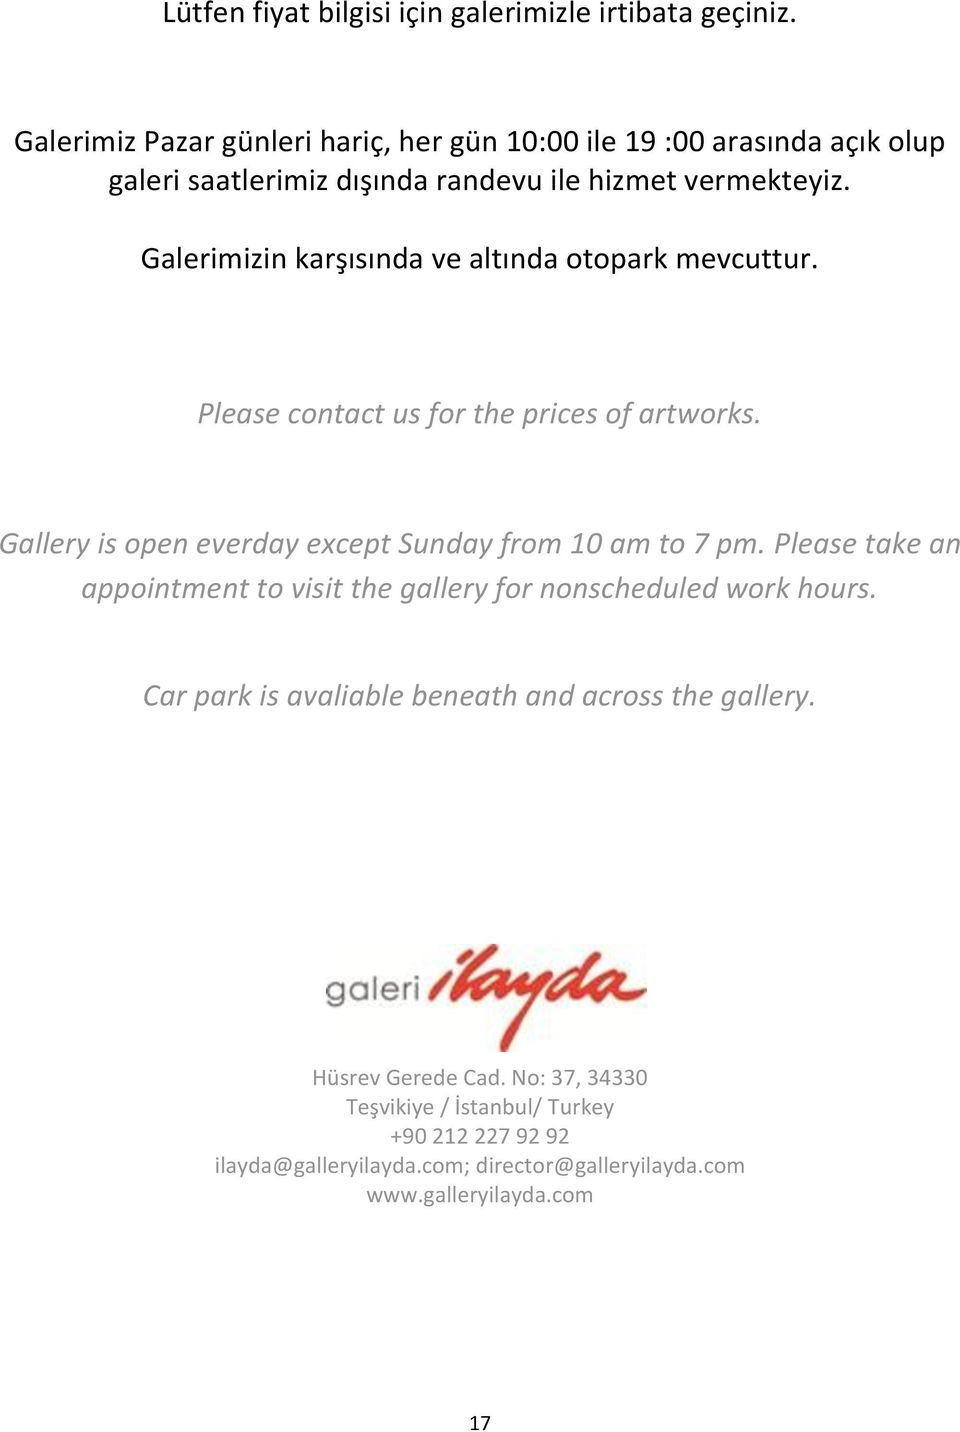 Galerimizin karşısında ve altında otopark mevcuttur. Please contact us for the prices of artworks. Gallery is open everday except Sunday from 10 am to 7 pm.